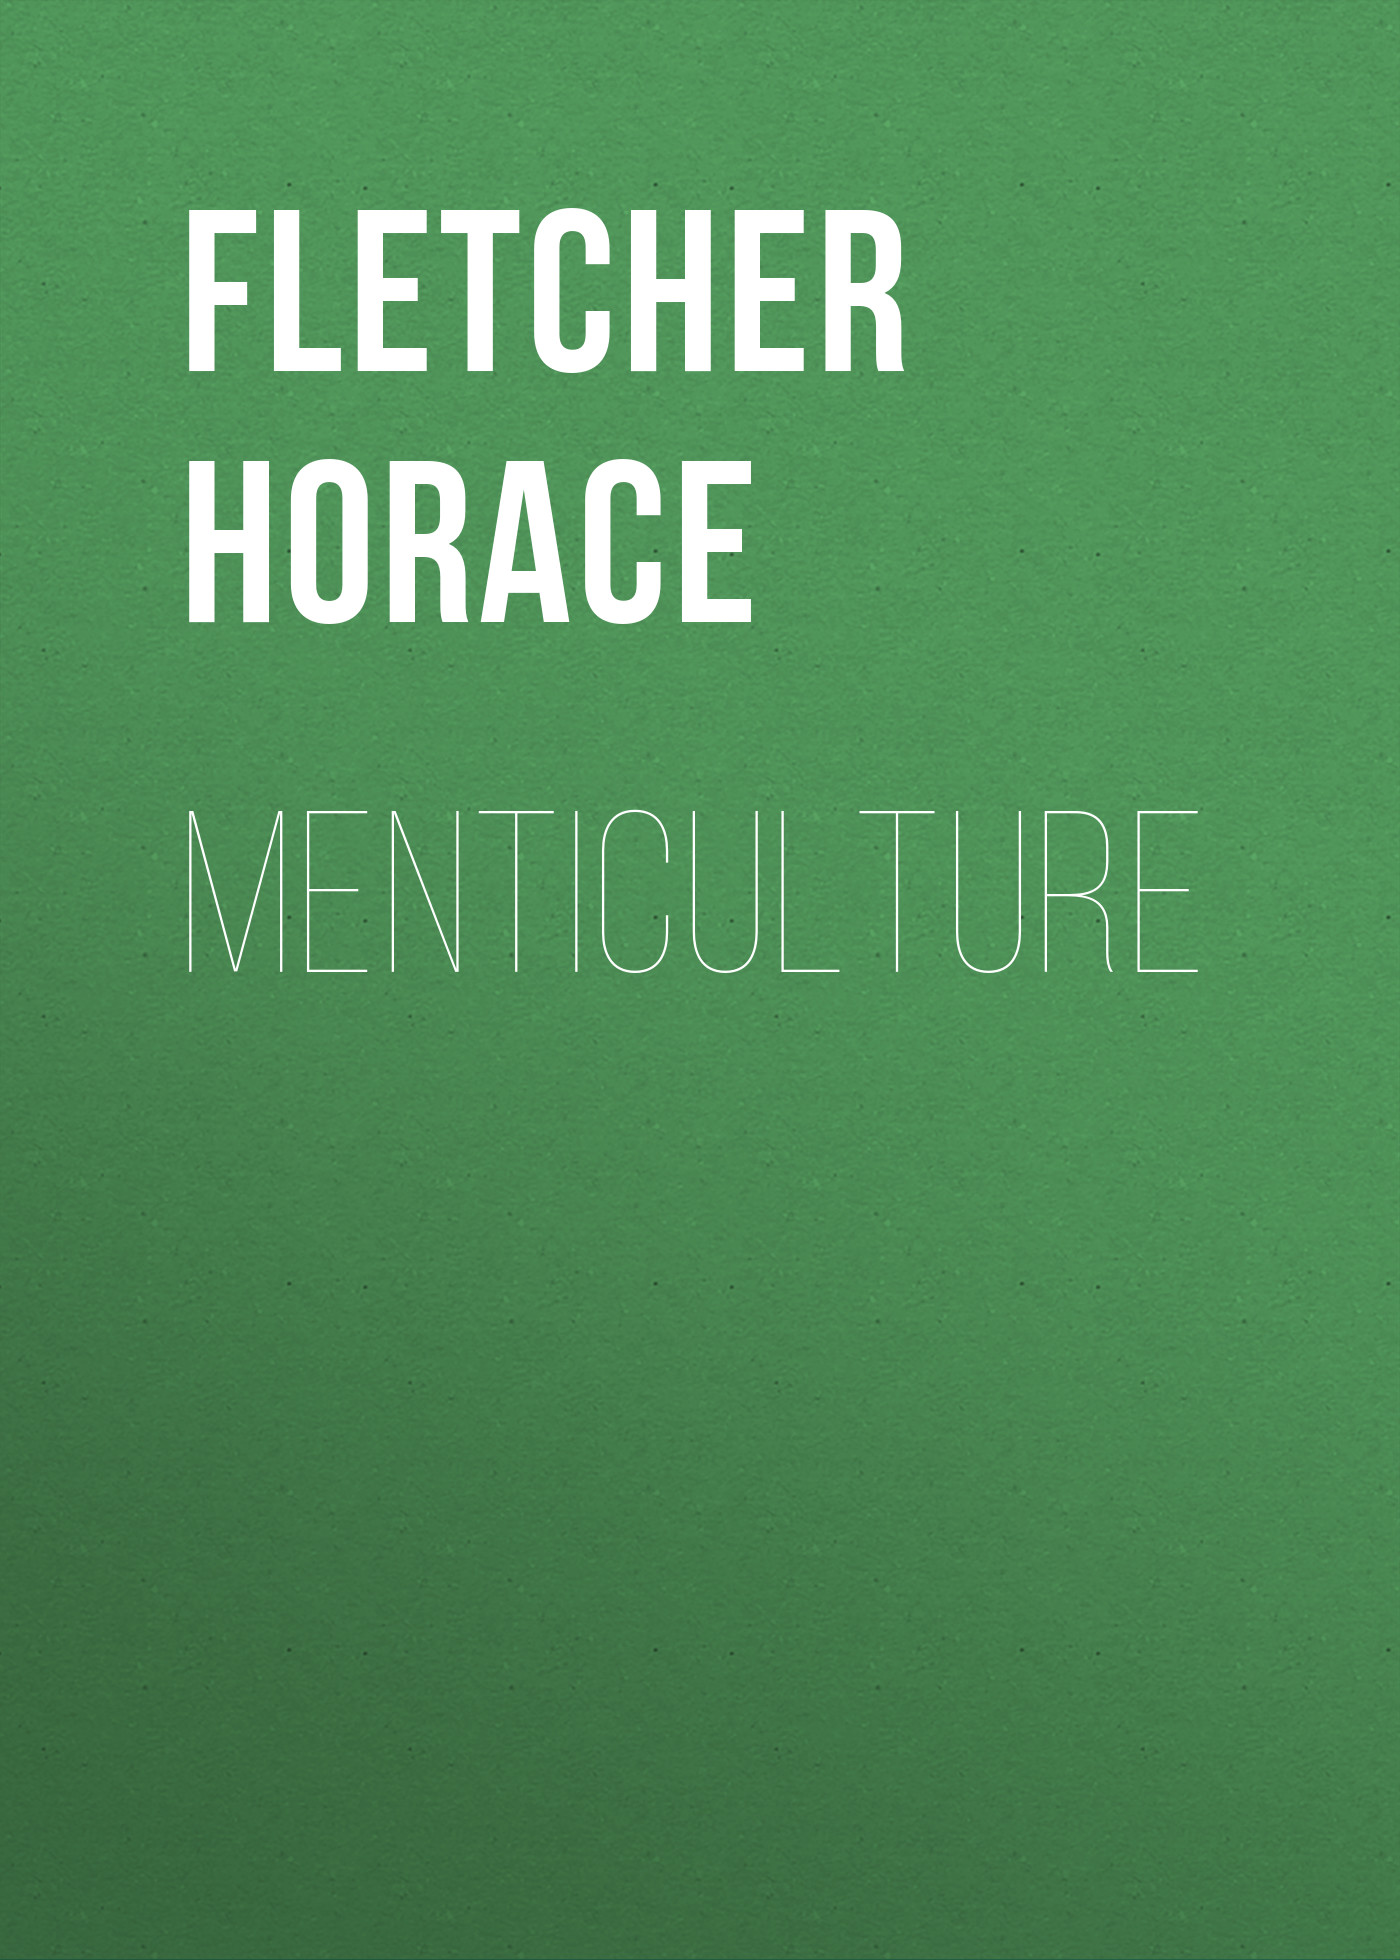 Fletcher Horace Menticulture fletcher horace the new glutton or epicure